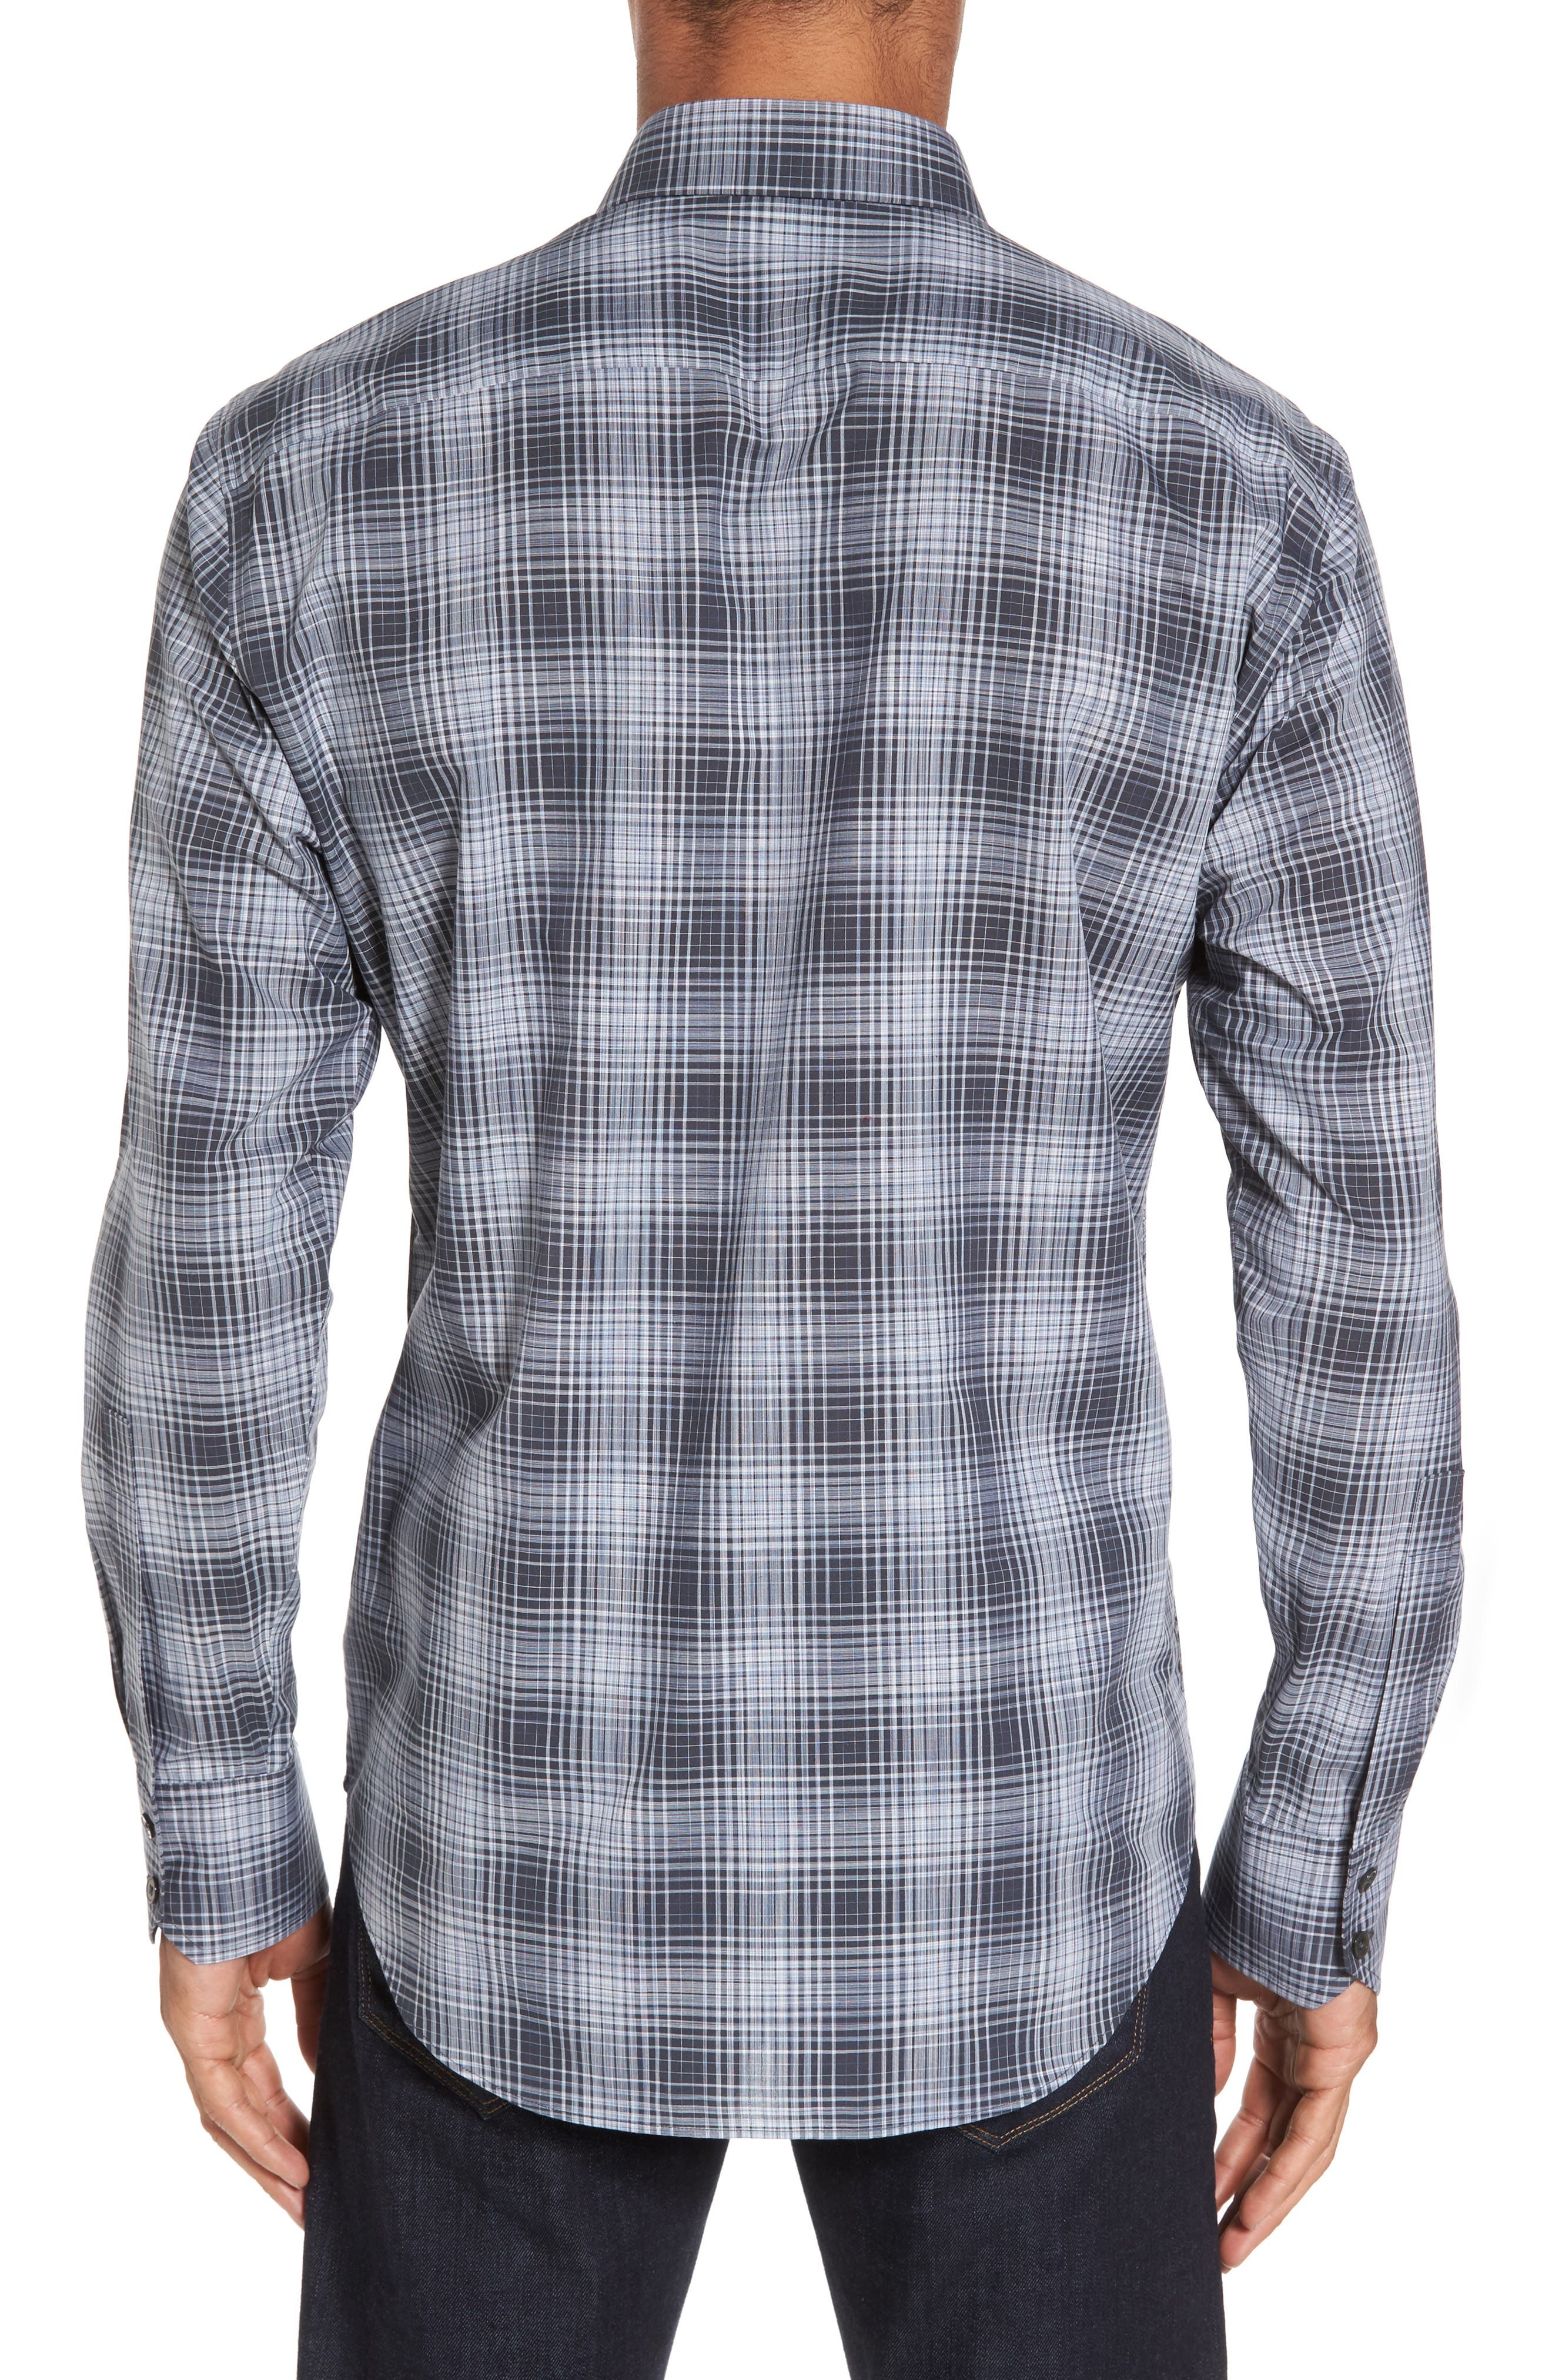 Zander Check Sport Shirt,                             Alternate thumbnail 2, color,                             021